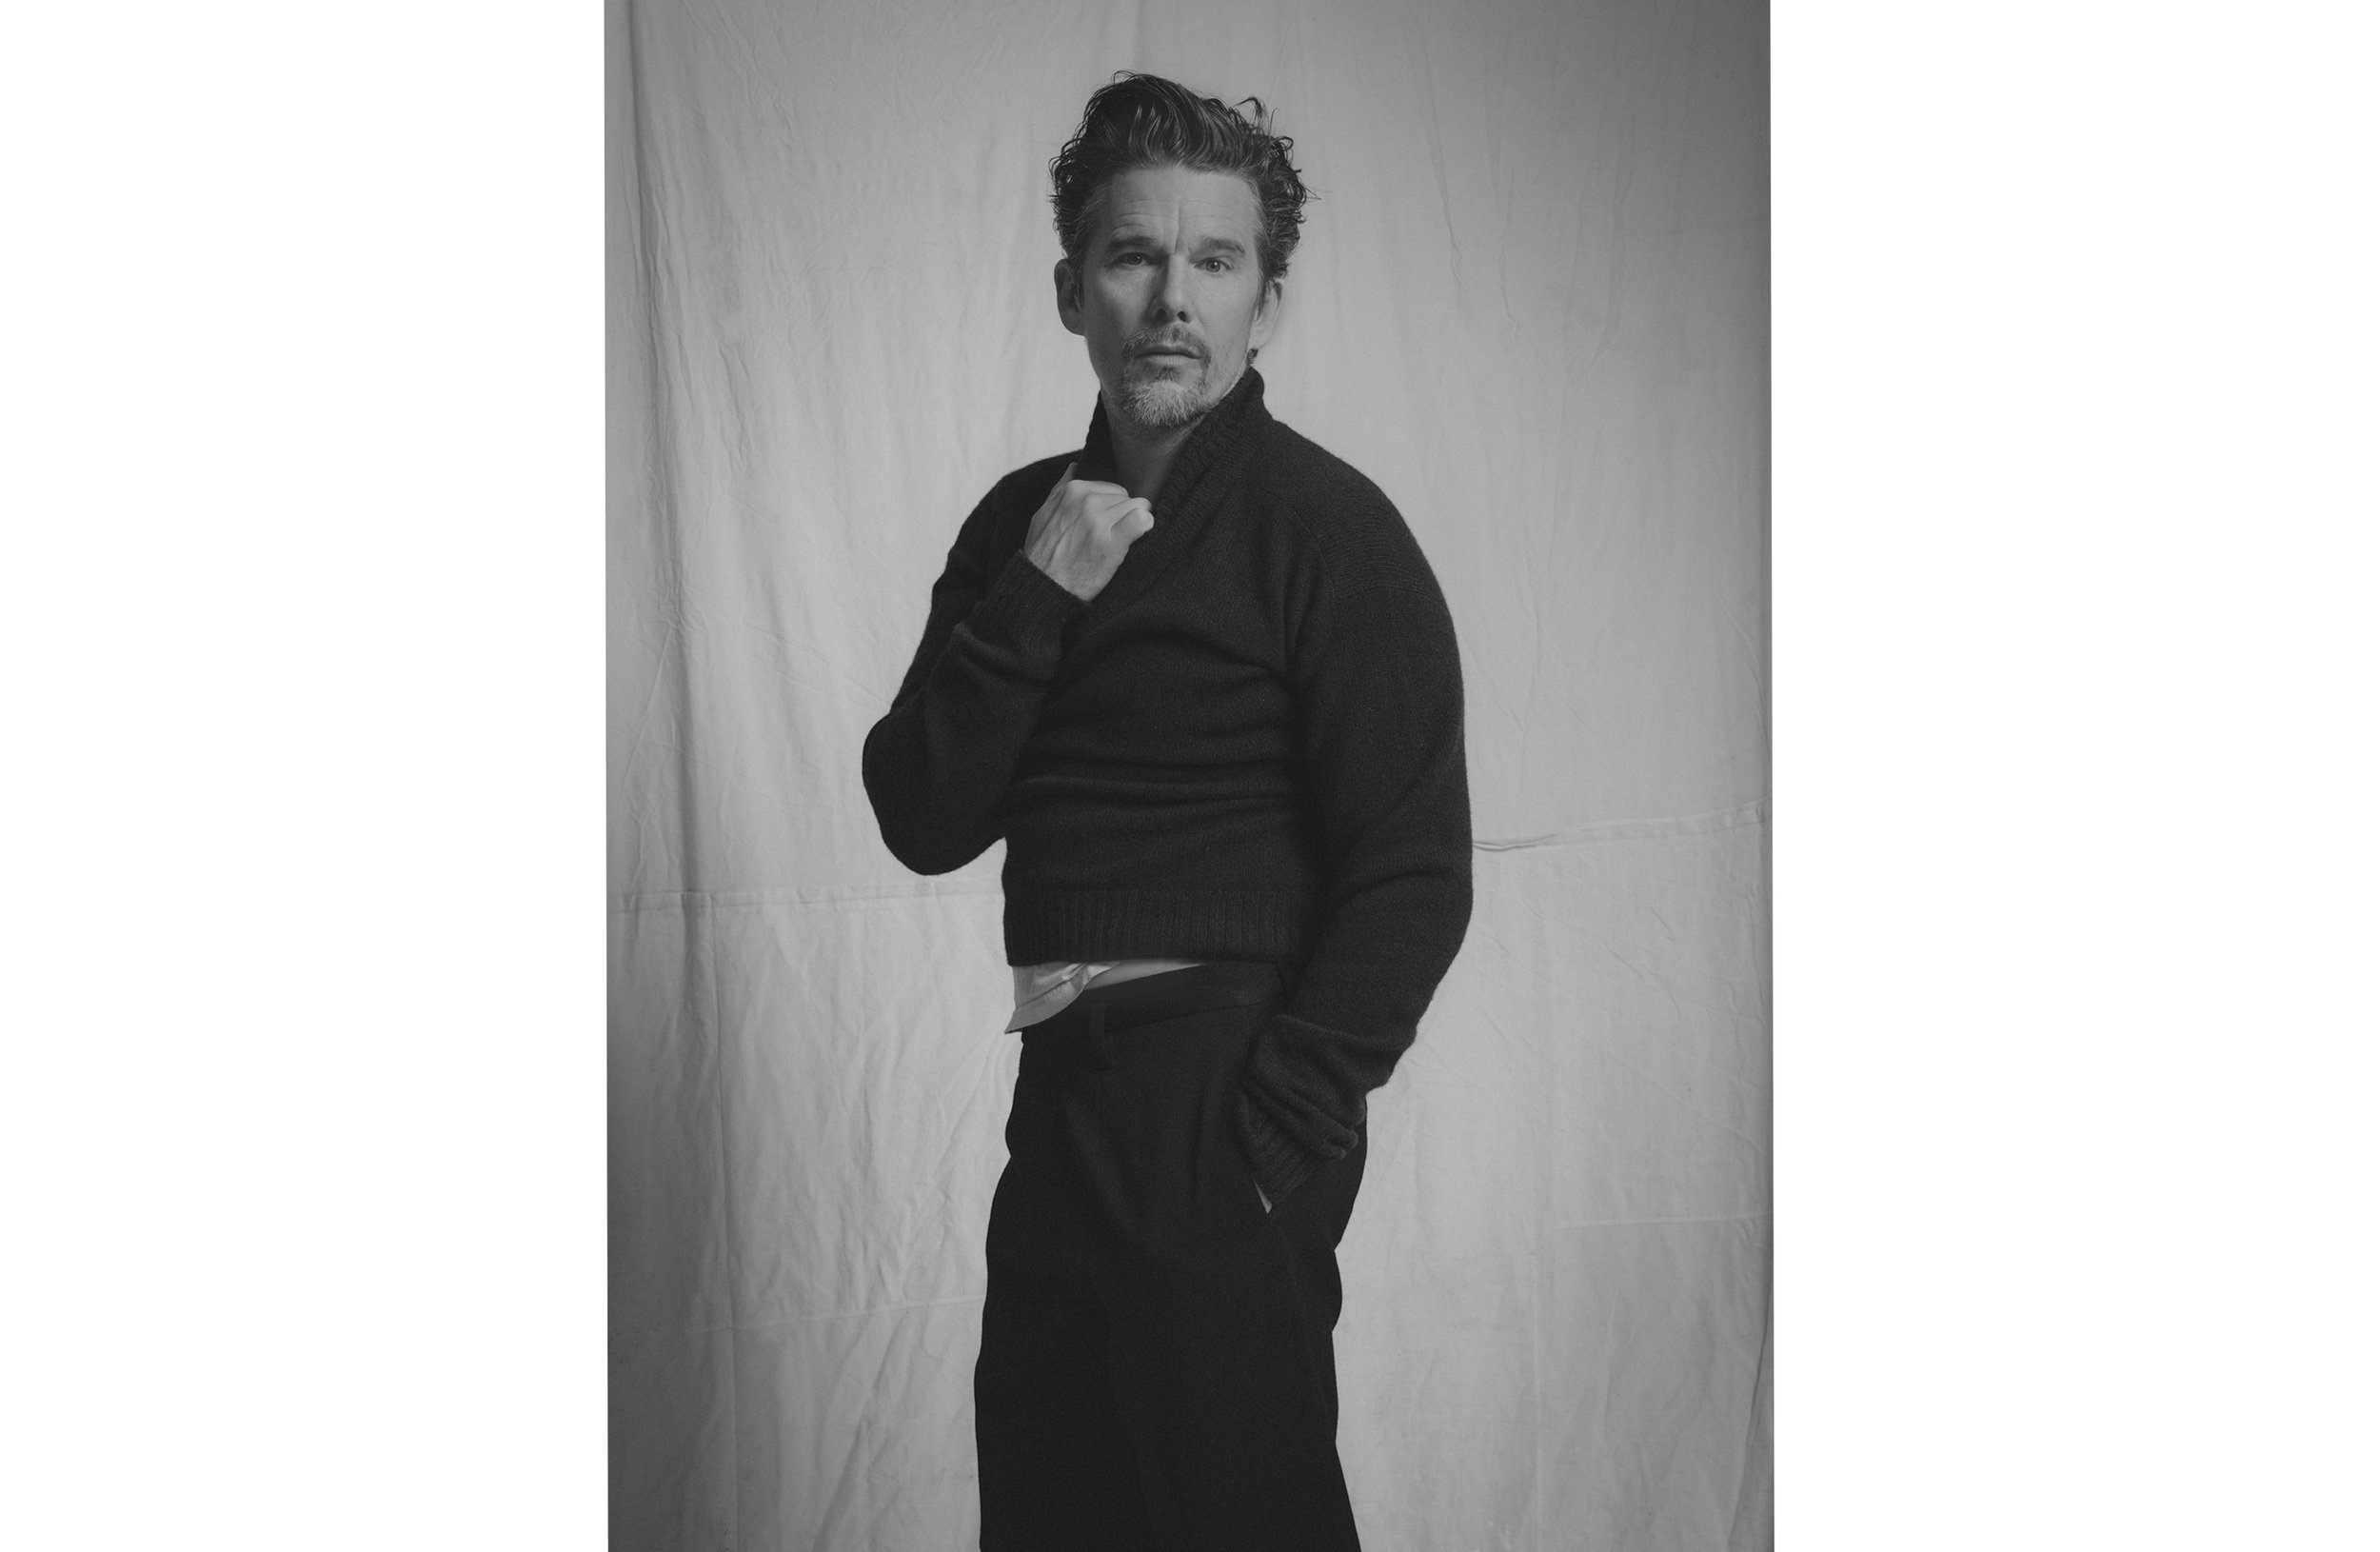 ETHAN HAWKE FOR ESSENTIAL HOMME, PARIS 2018